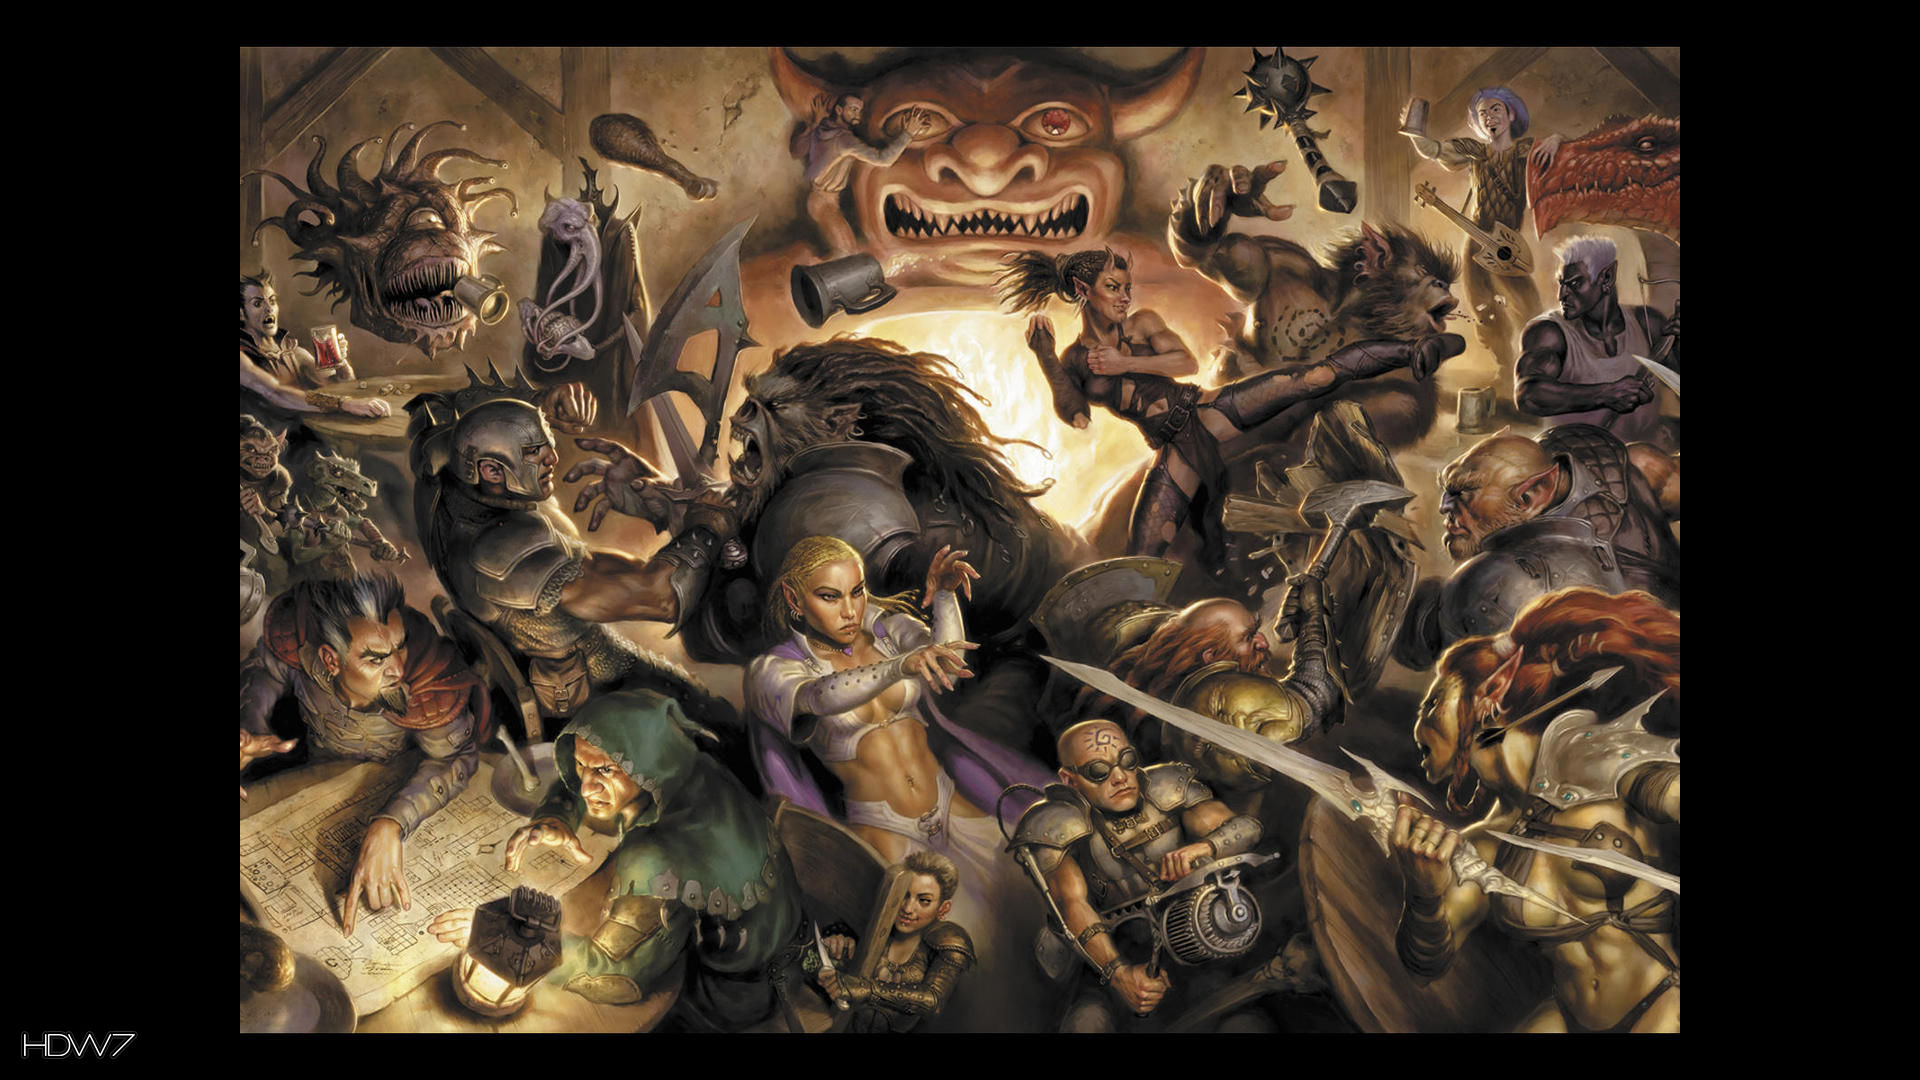 Free Download Dungeons And Dragons Wallpaper Hd 1920x1080 For